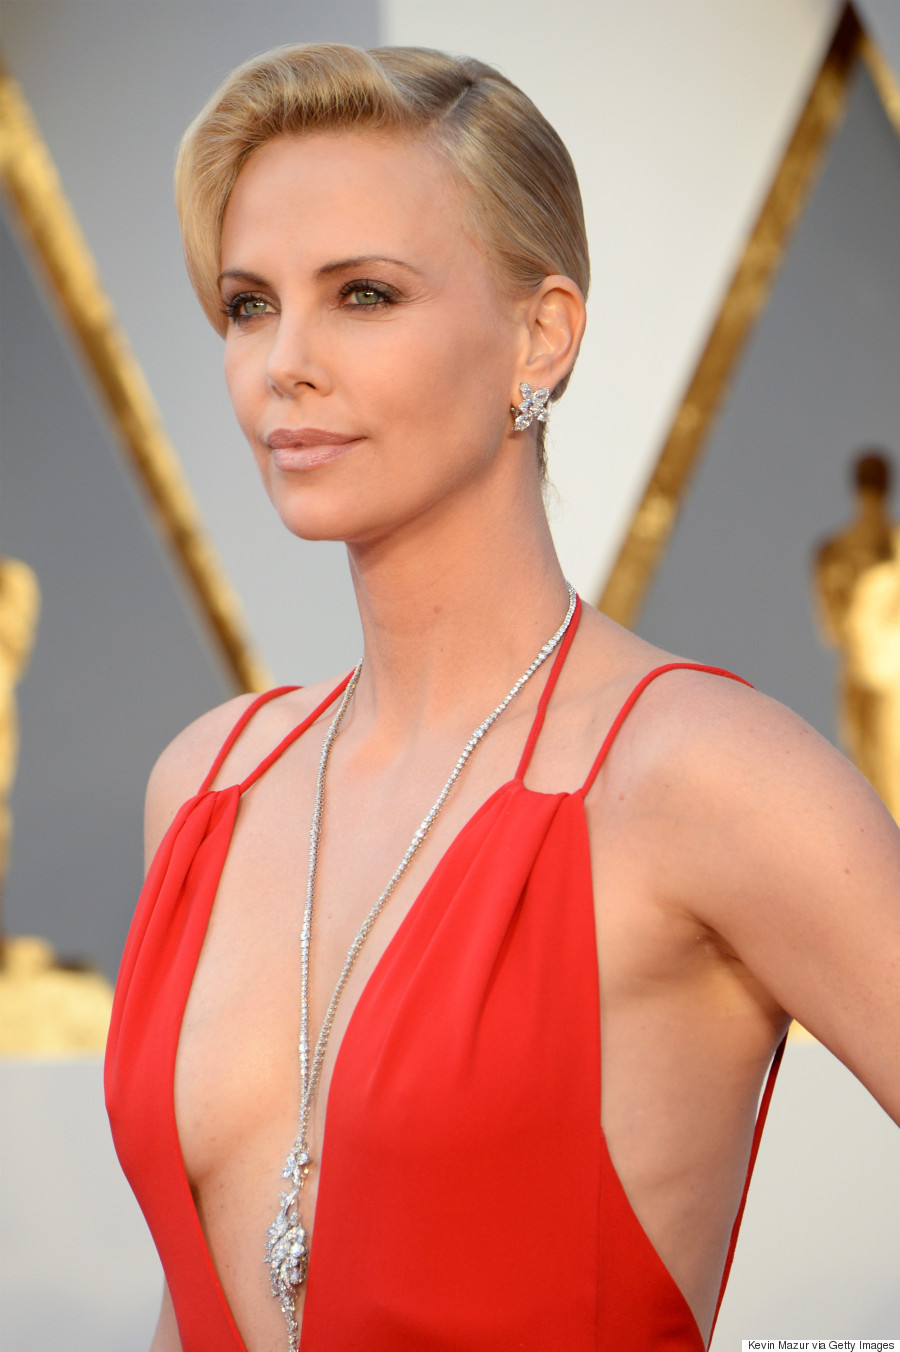 Charlize Theron #13